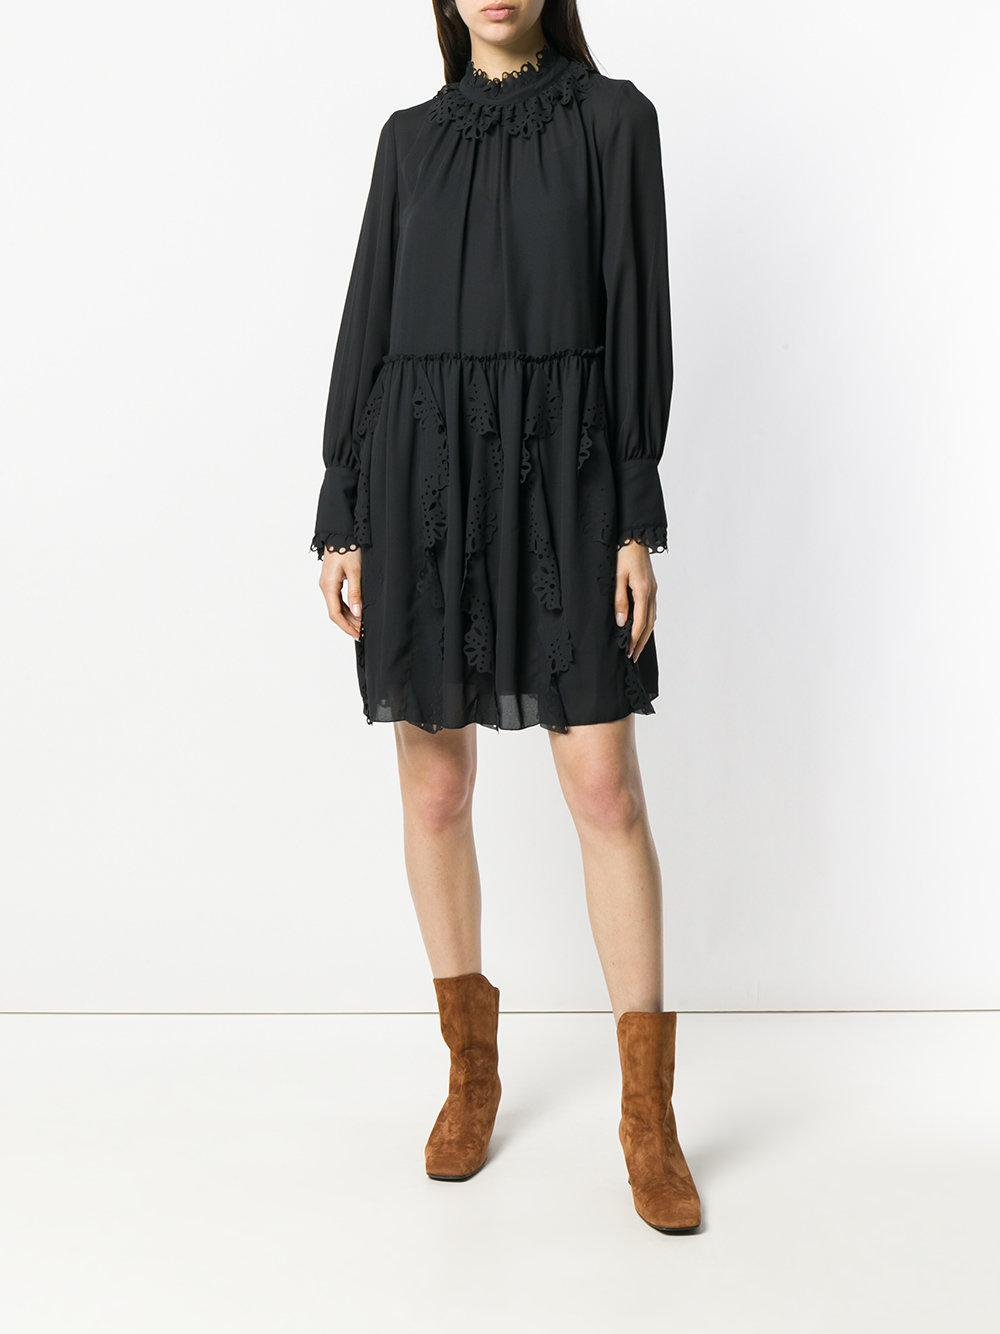 See By Chloé laser-cut detail dress Clearance Cheapest Sale Extremely Sast Cheap Price tCfKE2R